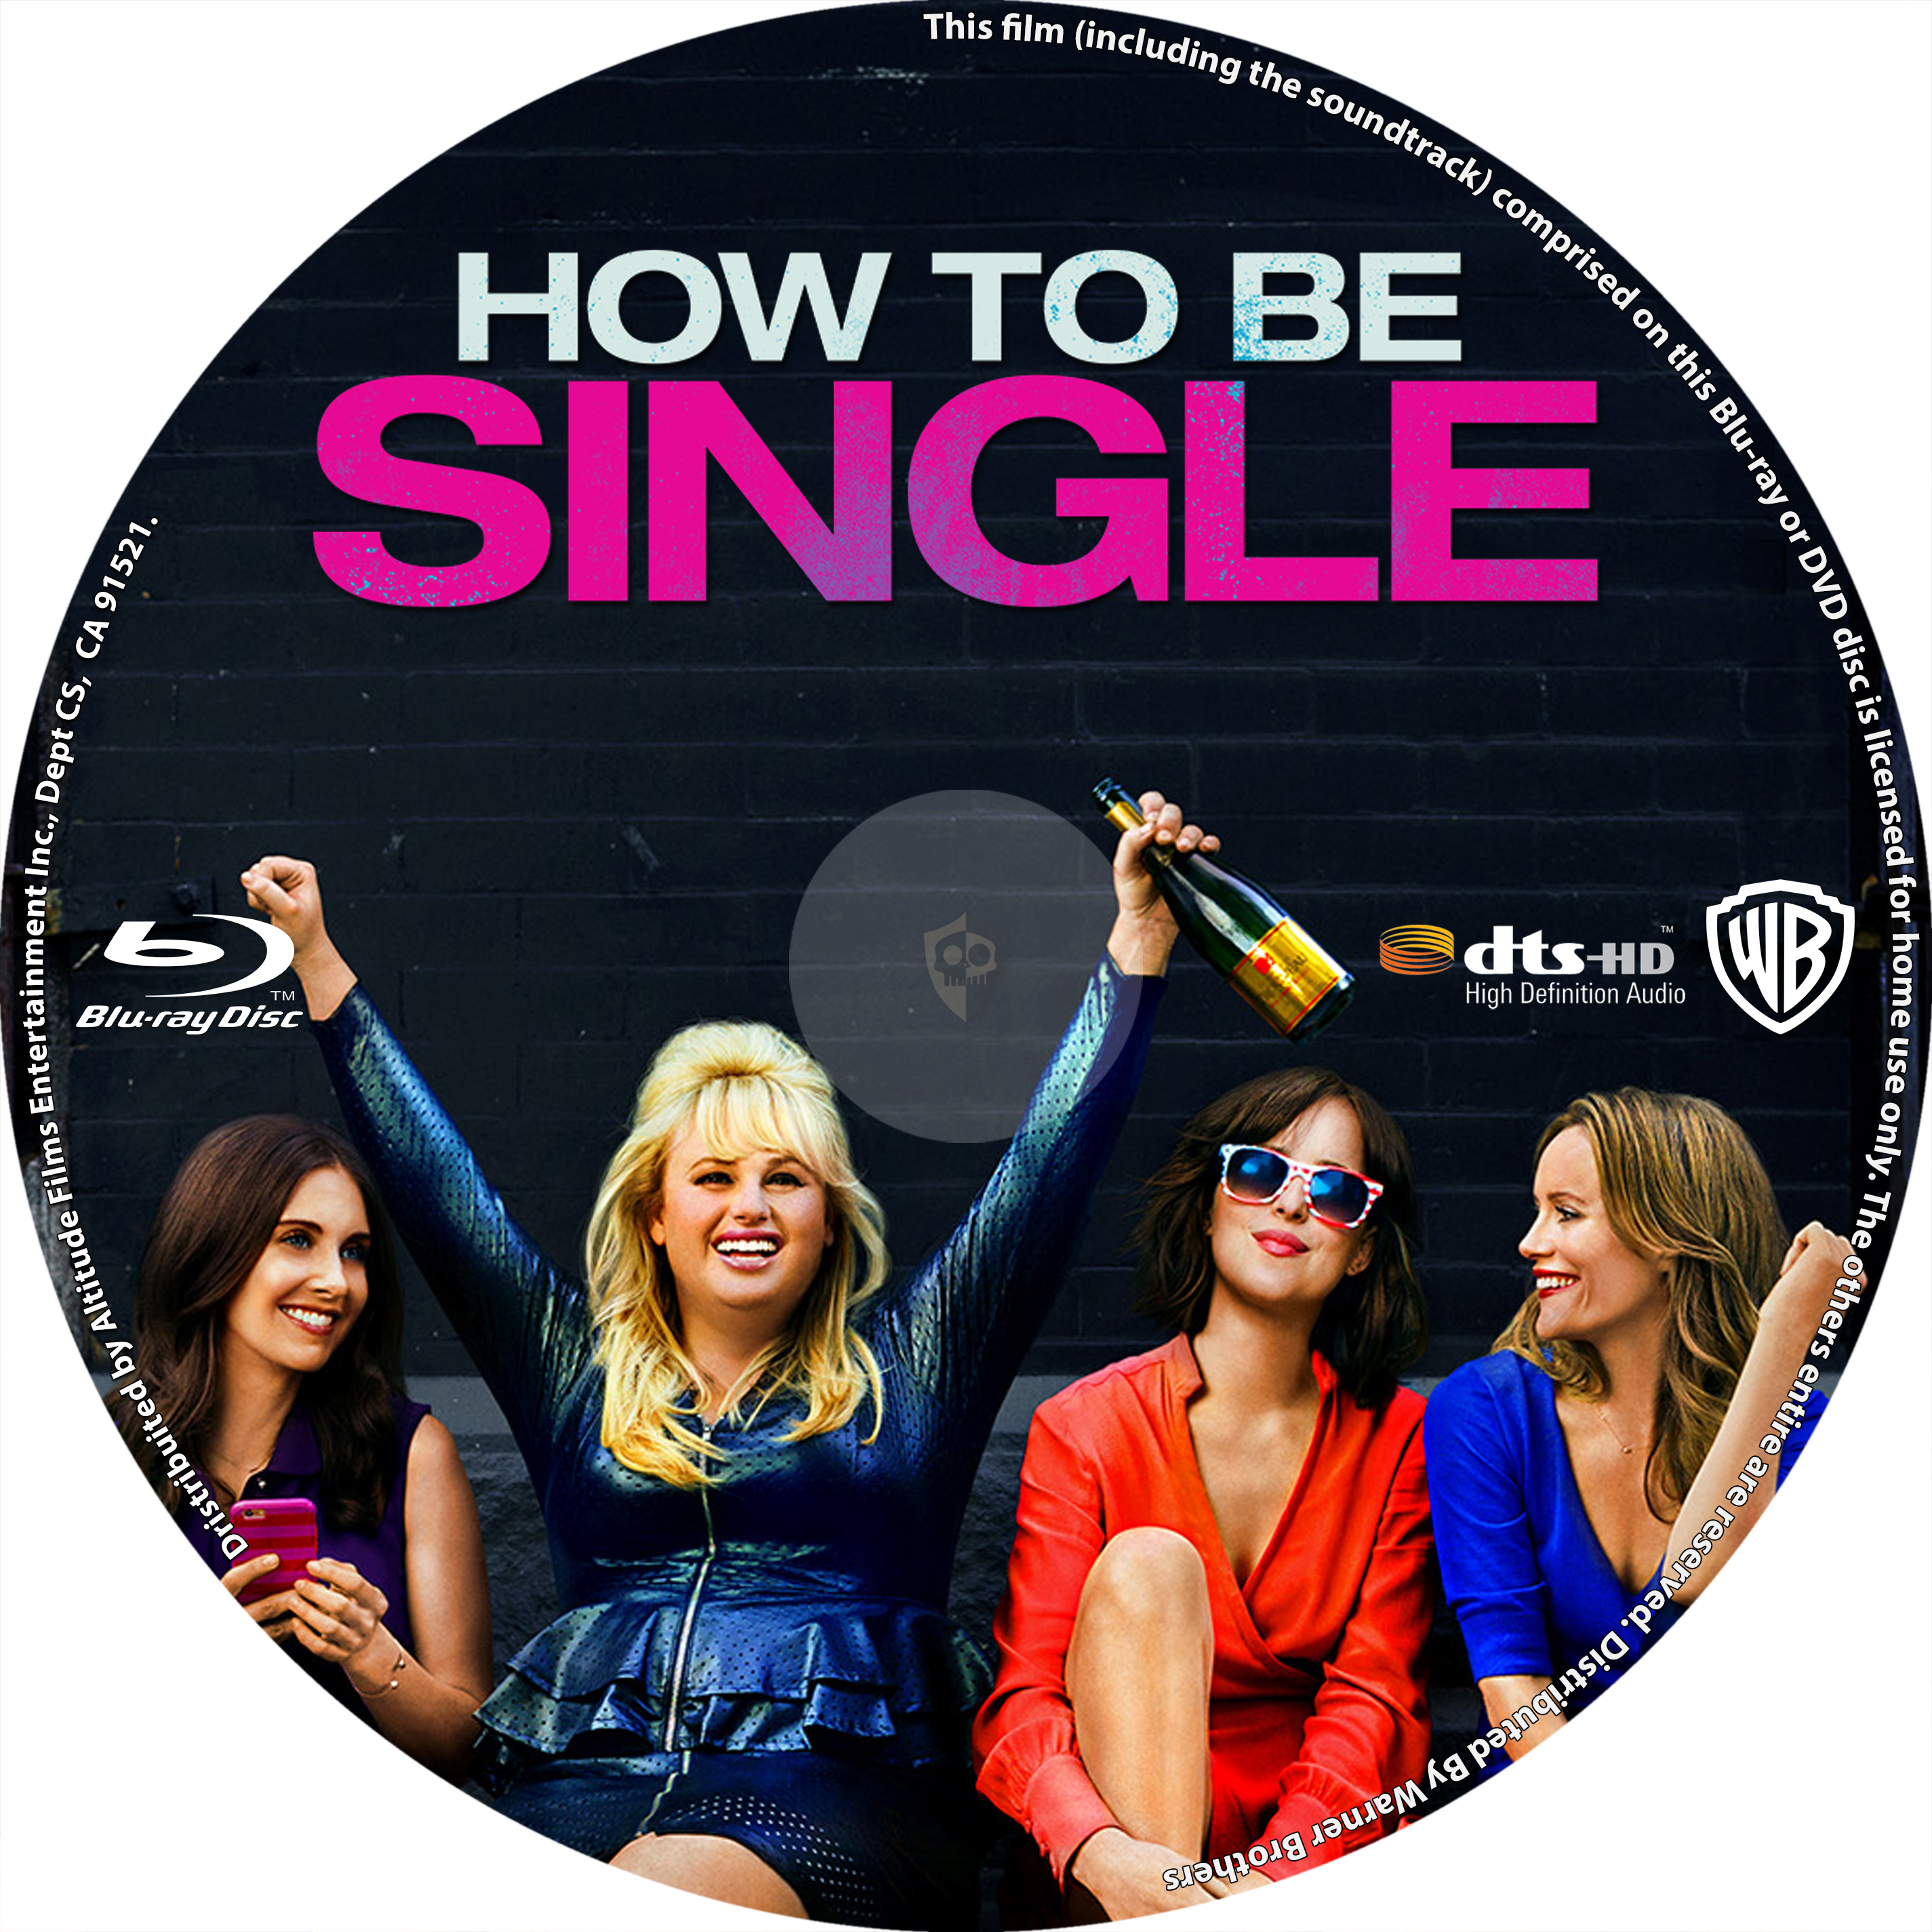 Download how to be single full movie